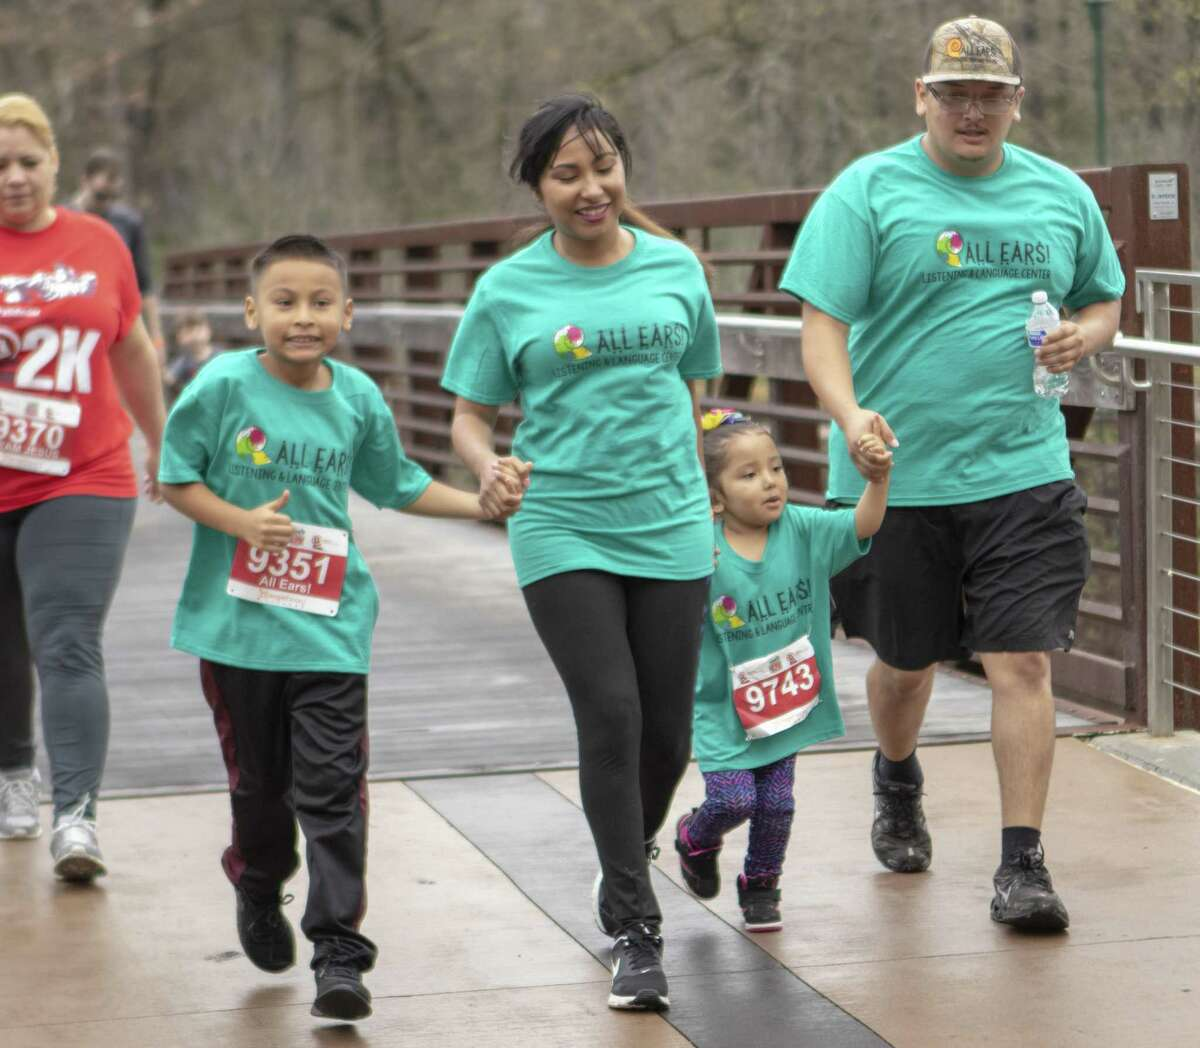 Runners from All Ears! cross over The Woodlands Waterway during The Woodlands Marathon 2K Fun Run/Walk on Saturday, Feb. 23, 2019 in The Woodlands.